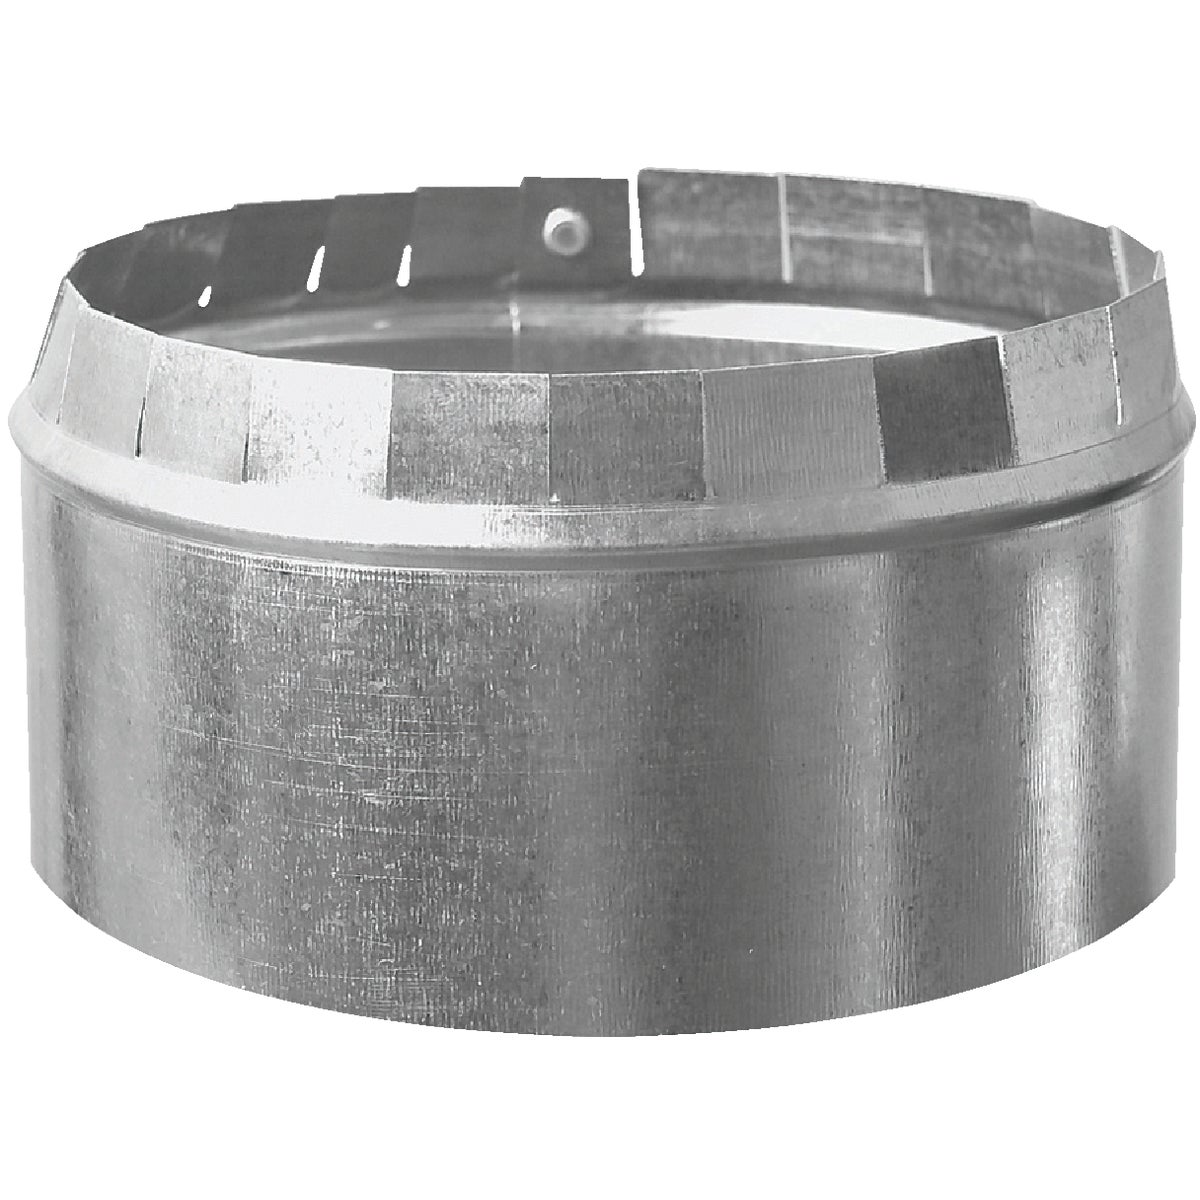 "6"" SHORT COLLAR - GV1399 by Imperial Mfg Group"